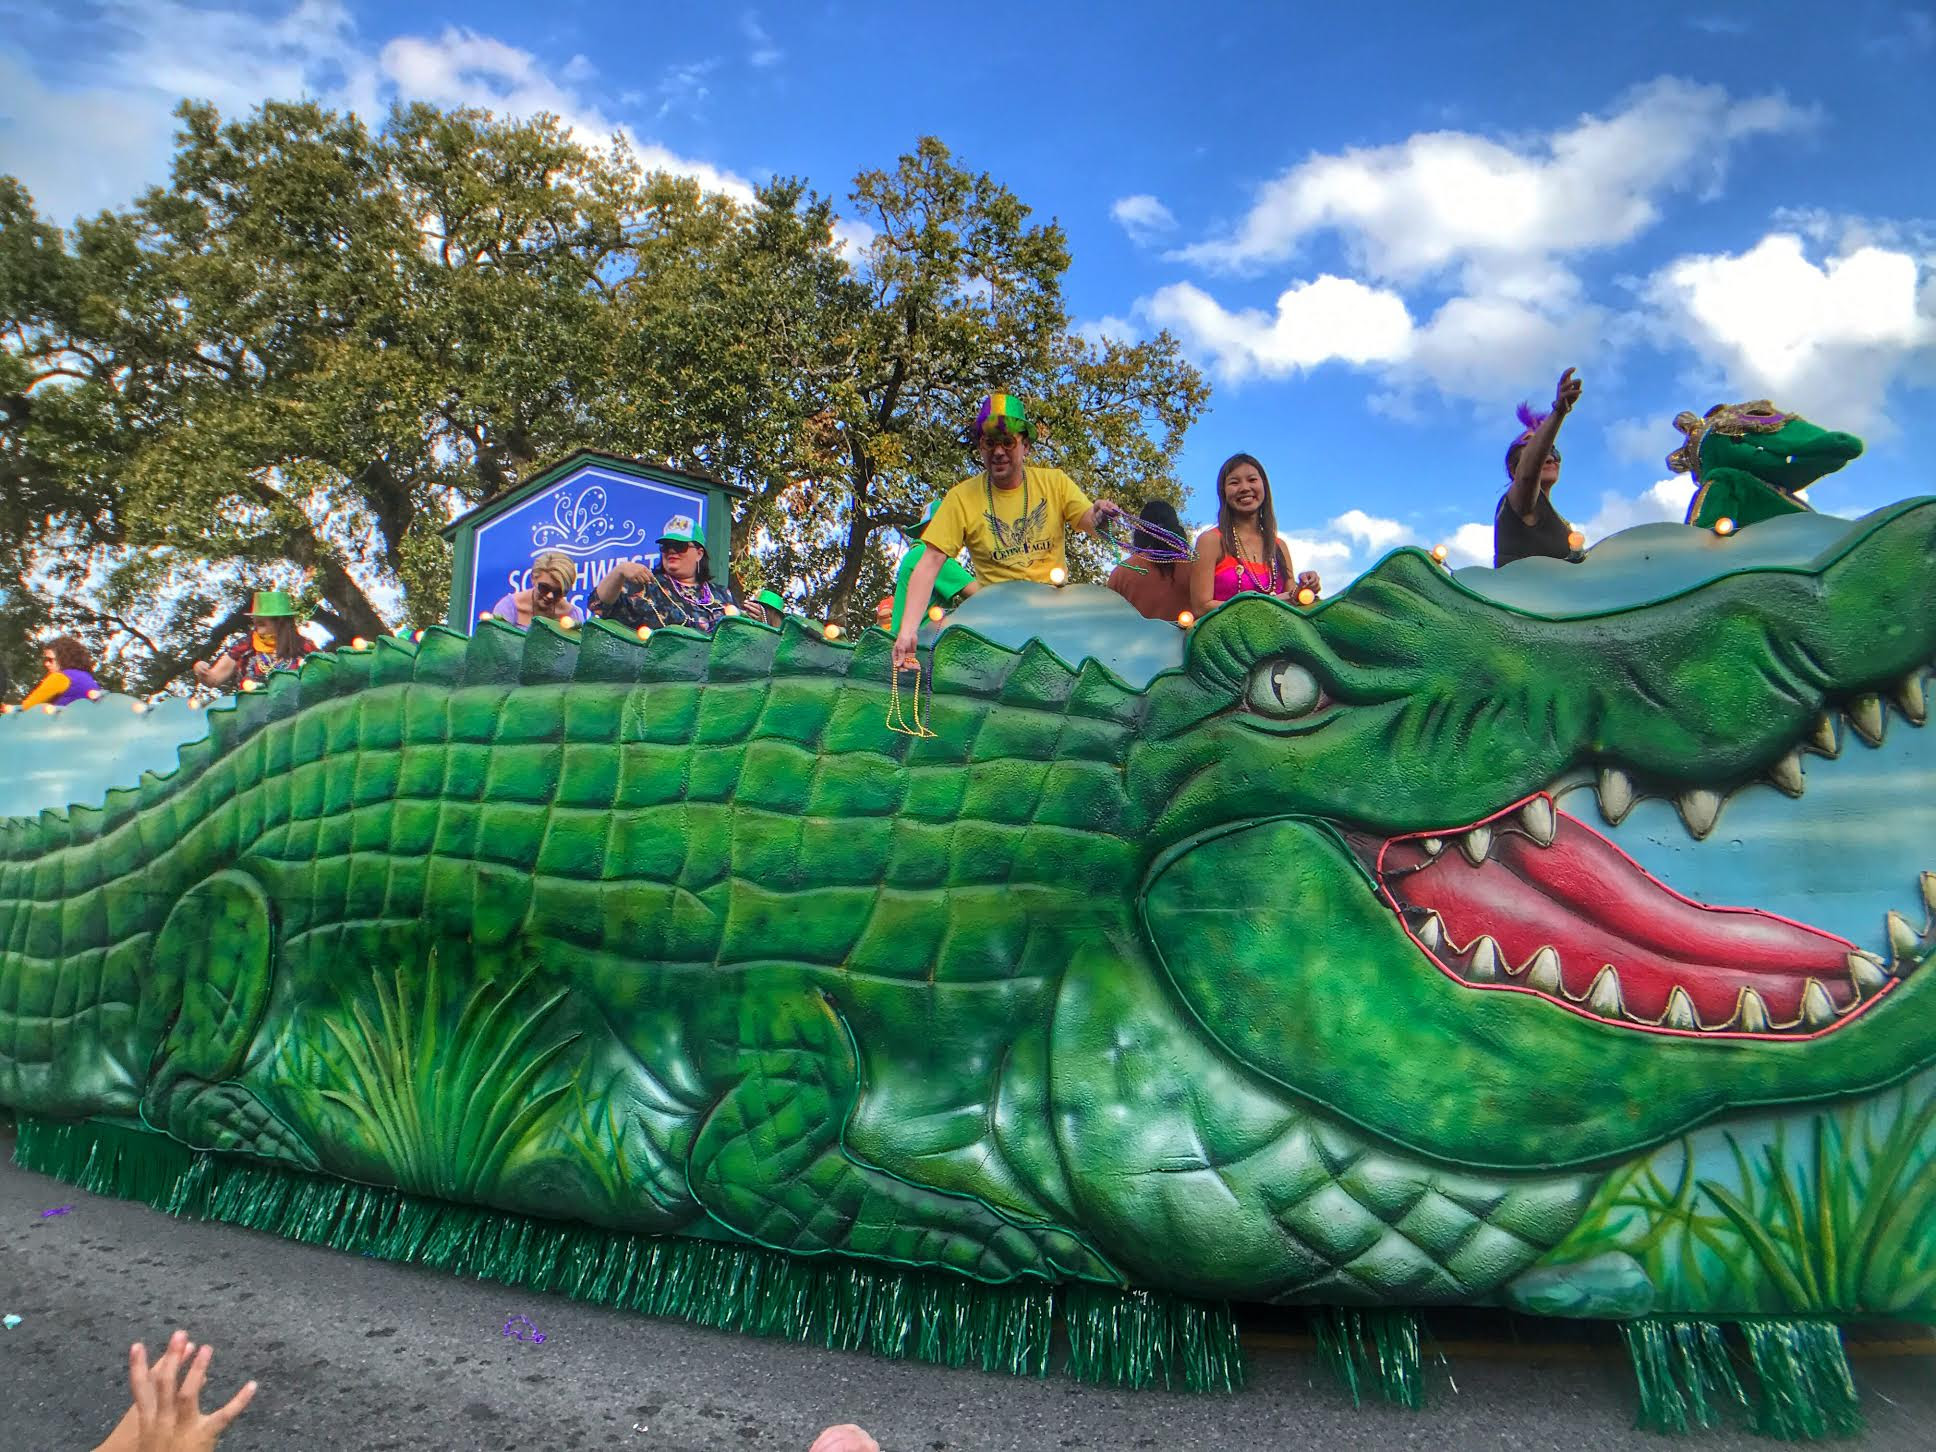 Lake Charles Mardi Gras Children's Parade